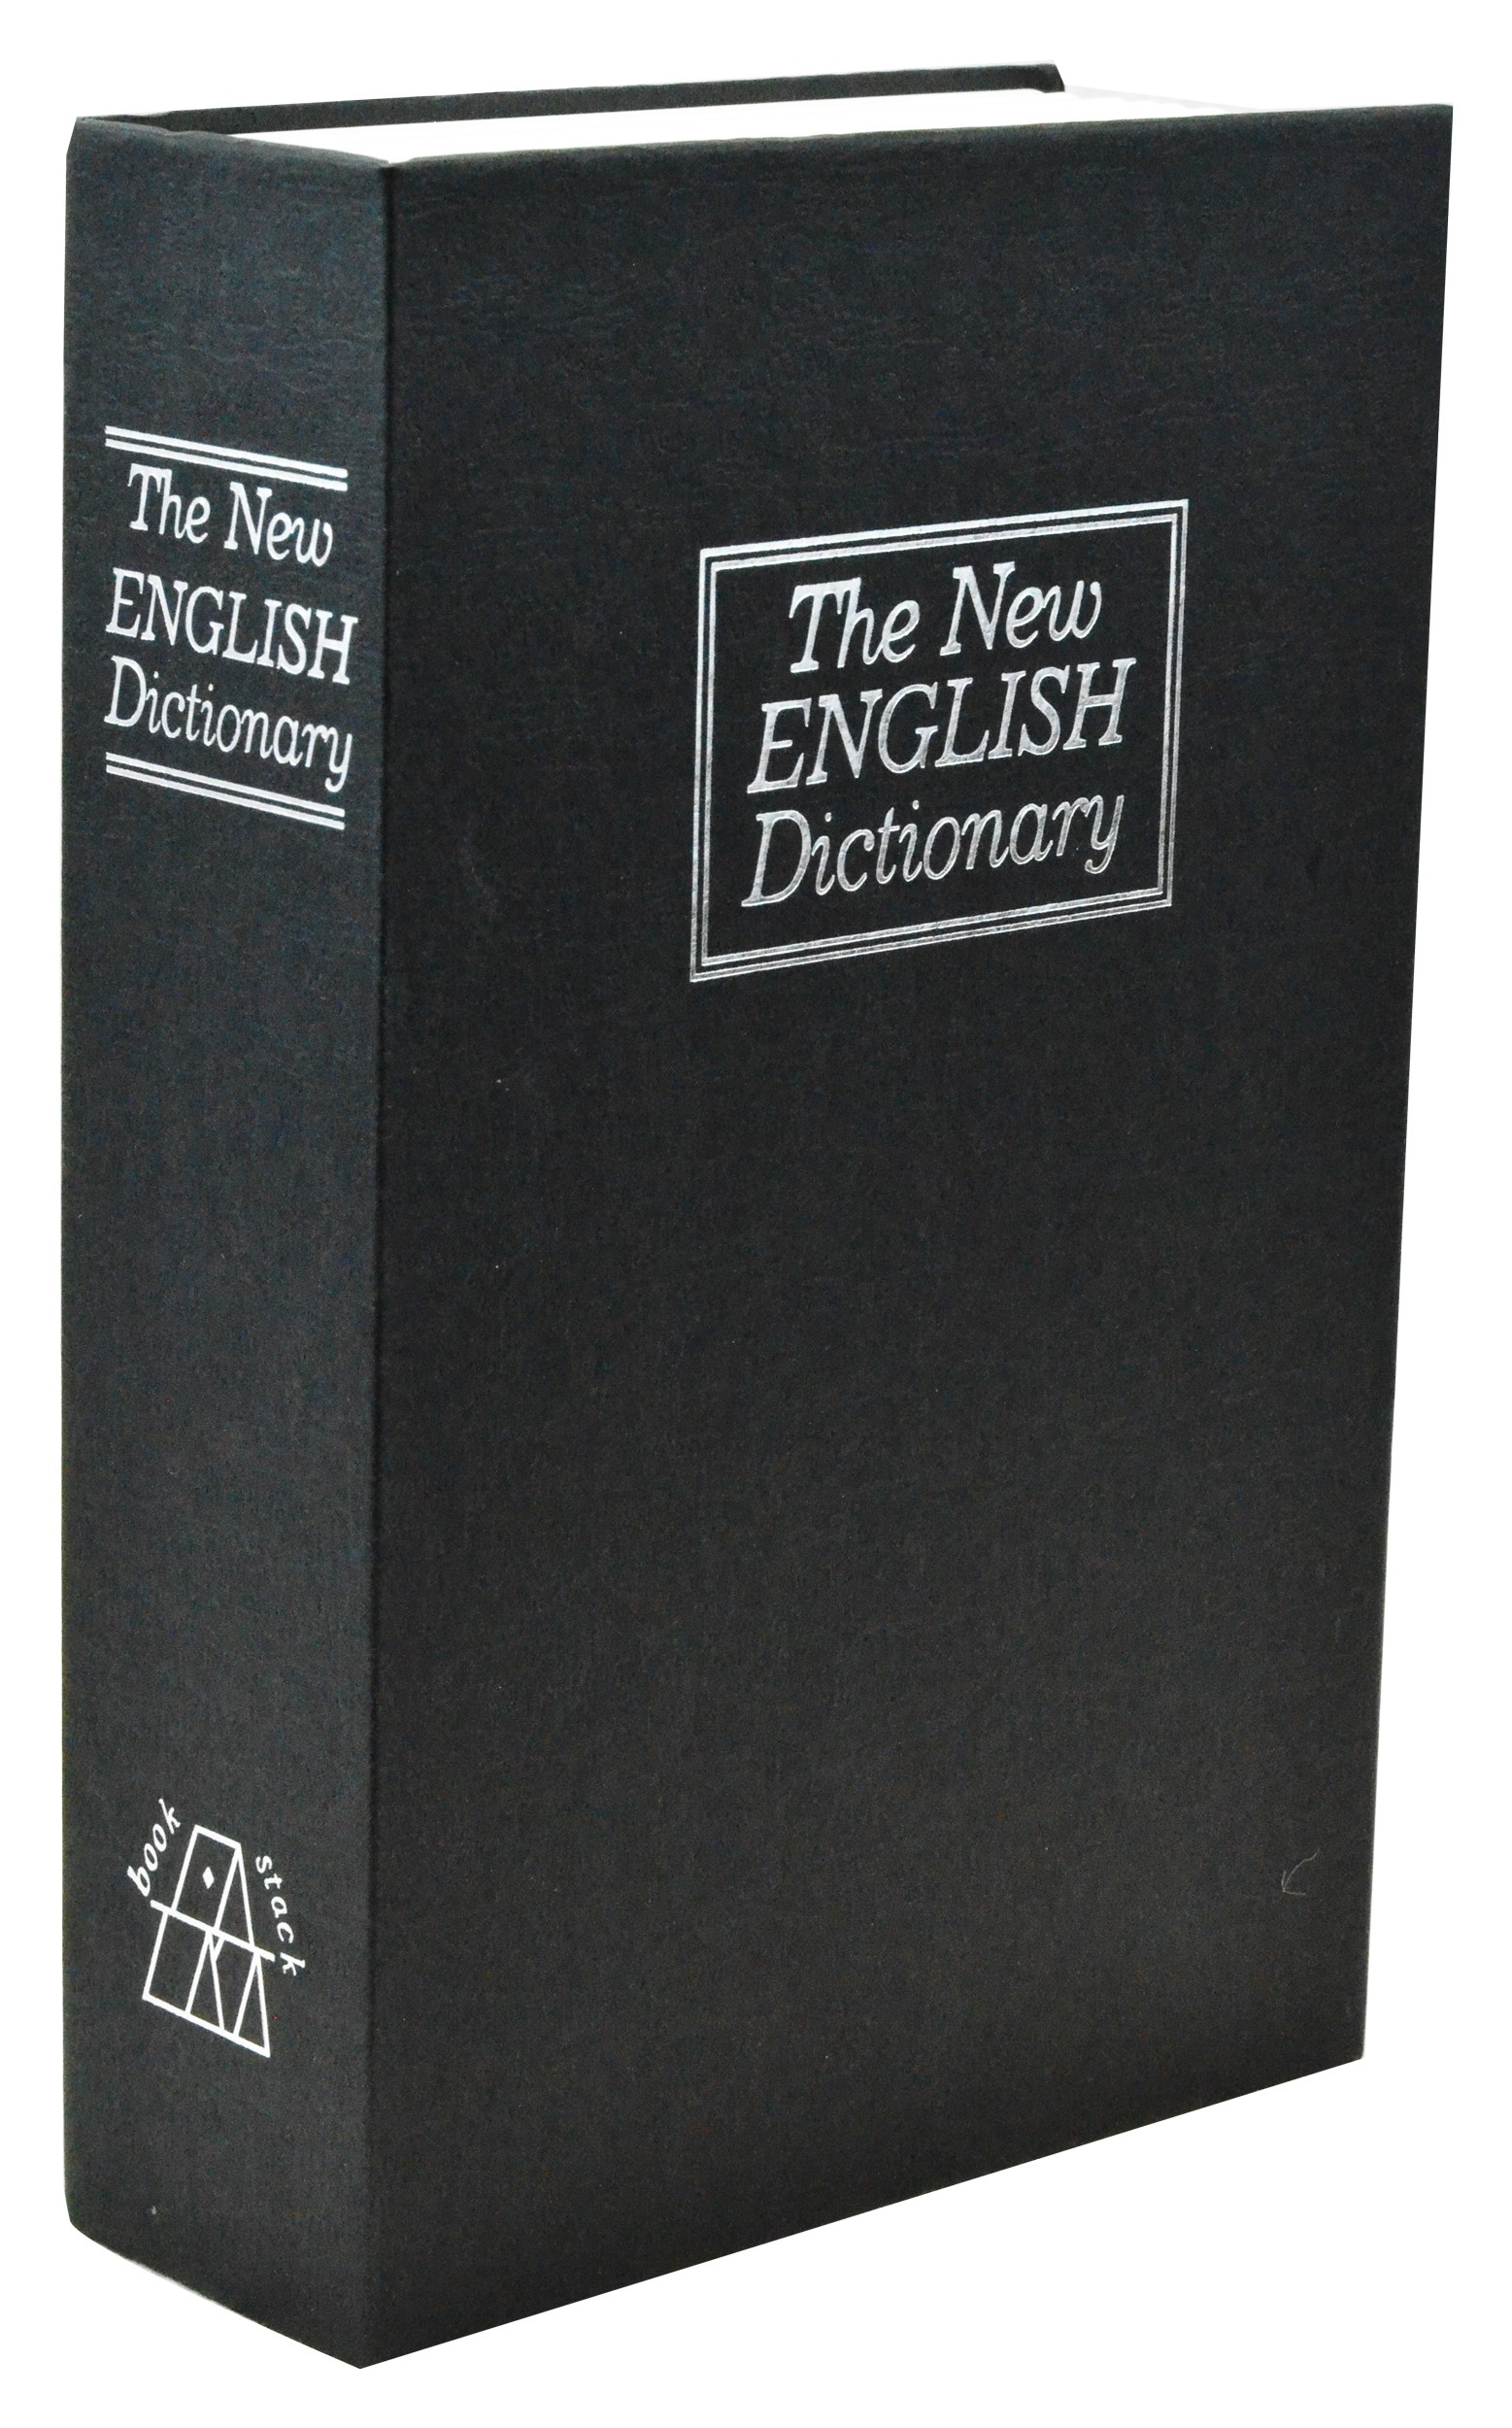 Medium New English Dictionary Book Safe - Black